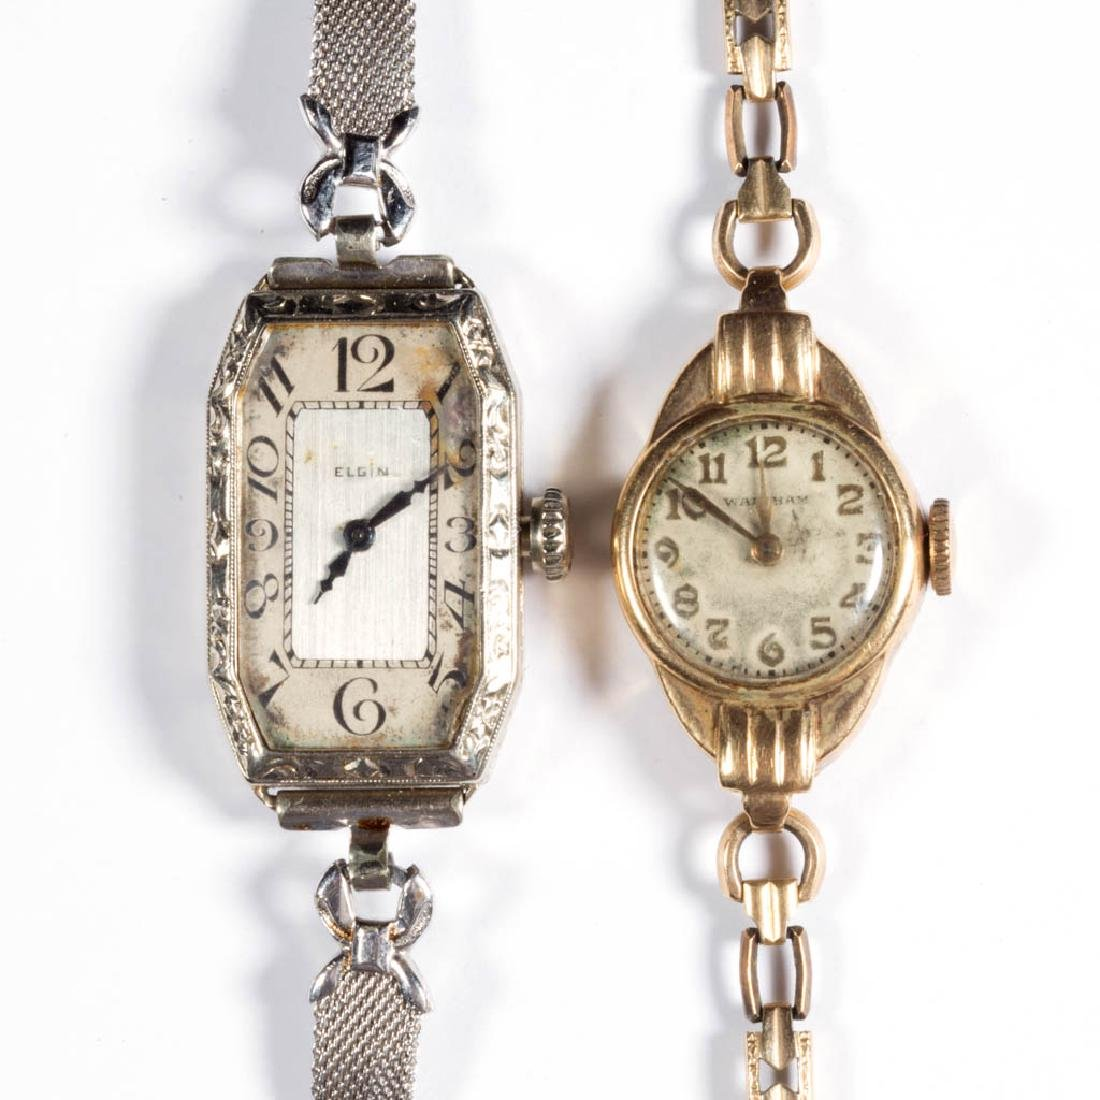 AMERICAN LADY'S GOLD CASE WRIST WATCHES, LOT OF TWO